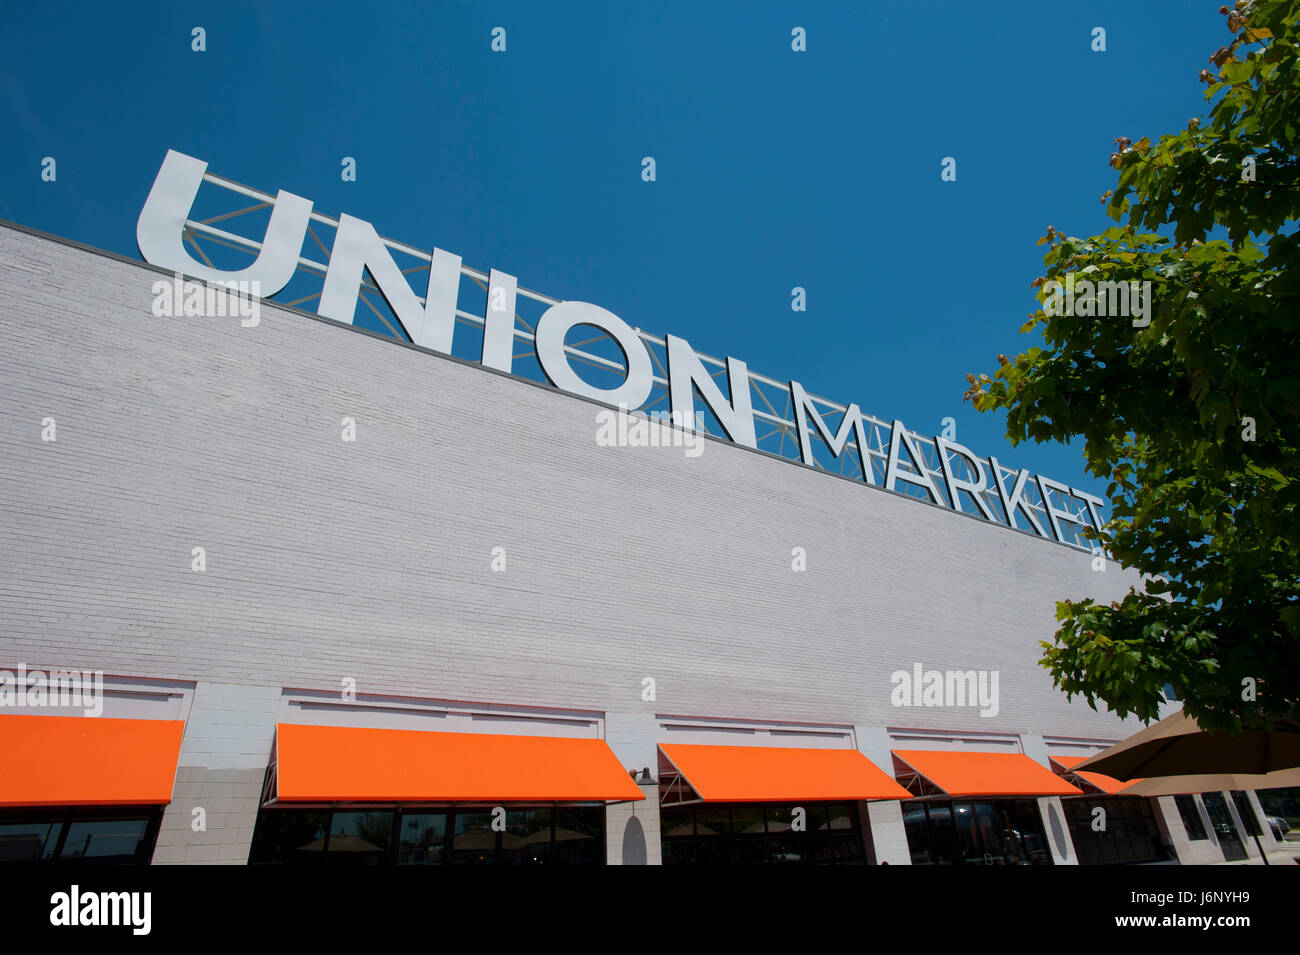 USA Washington DC Union Market hip market place for food and shopping in NE Northeast D.C. - Stock Image